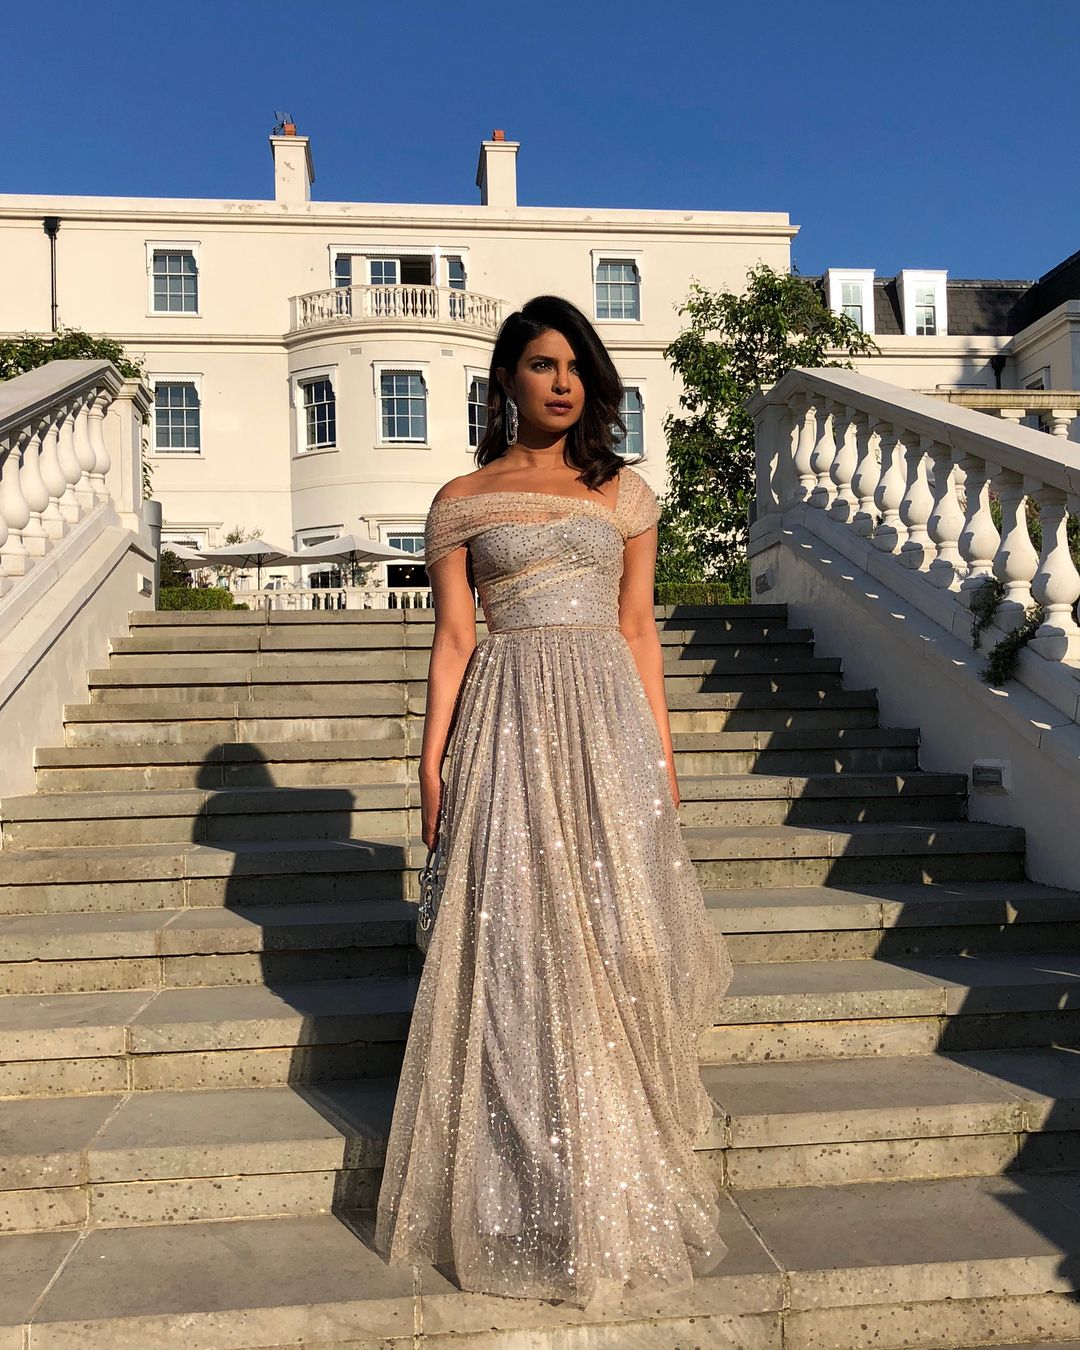 Priyanka Chopra S Light Lavender Dress And Hat For Prince Harry And Meghan Markle S Royal Wedd Celebrity Cocktail Dress Priyanka Chopra Dress Prom Dresses Long